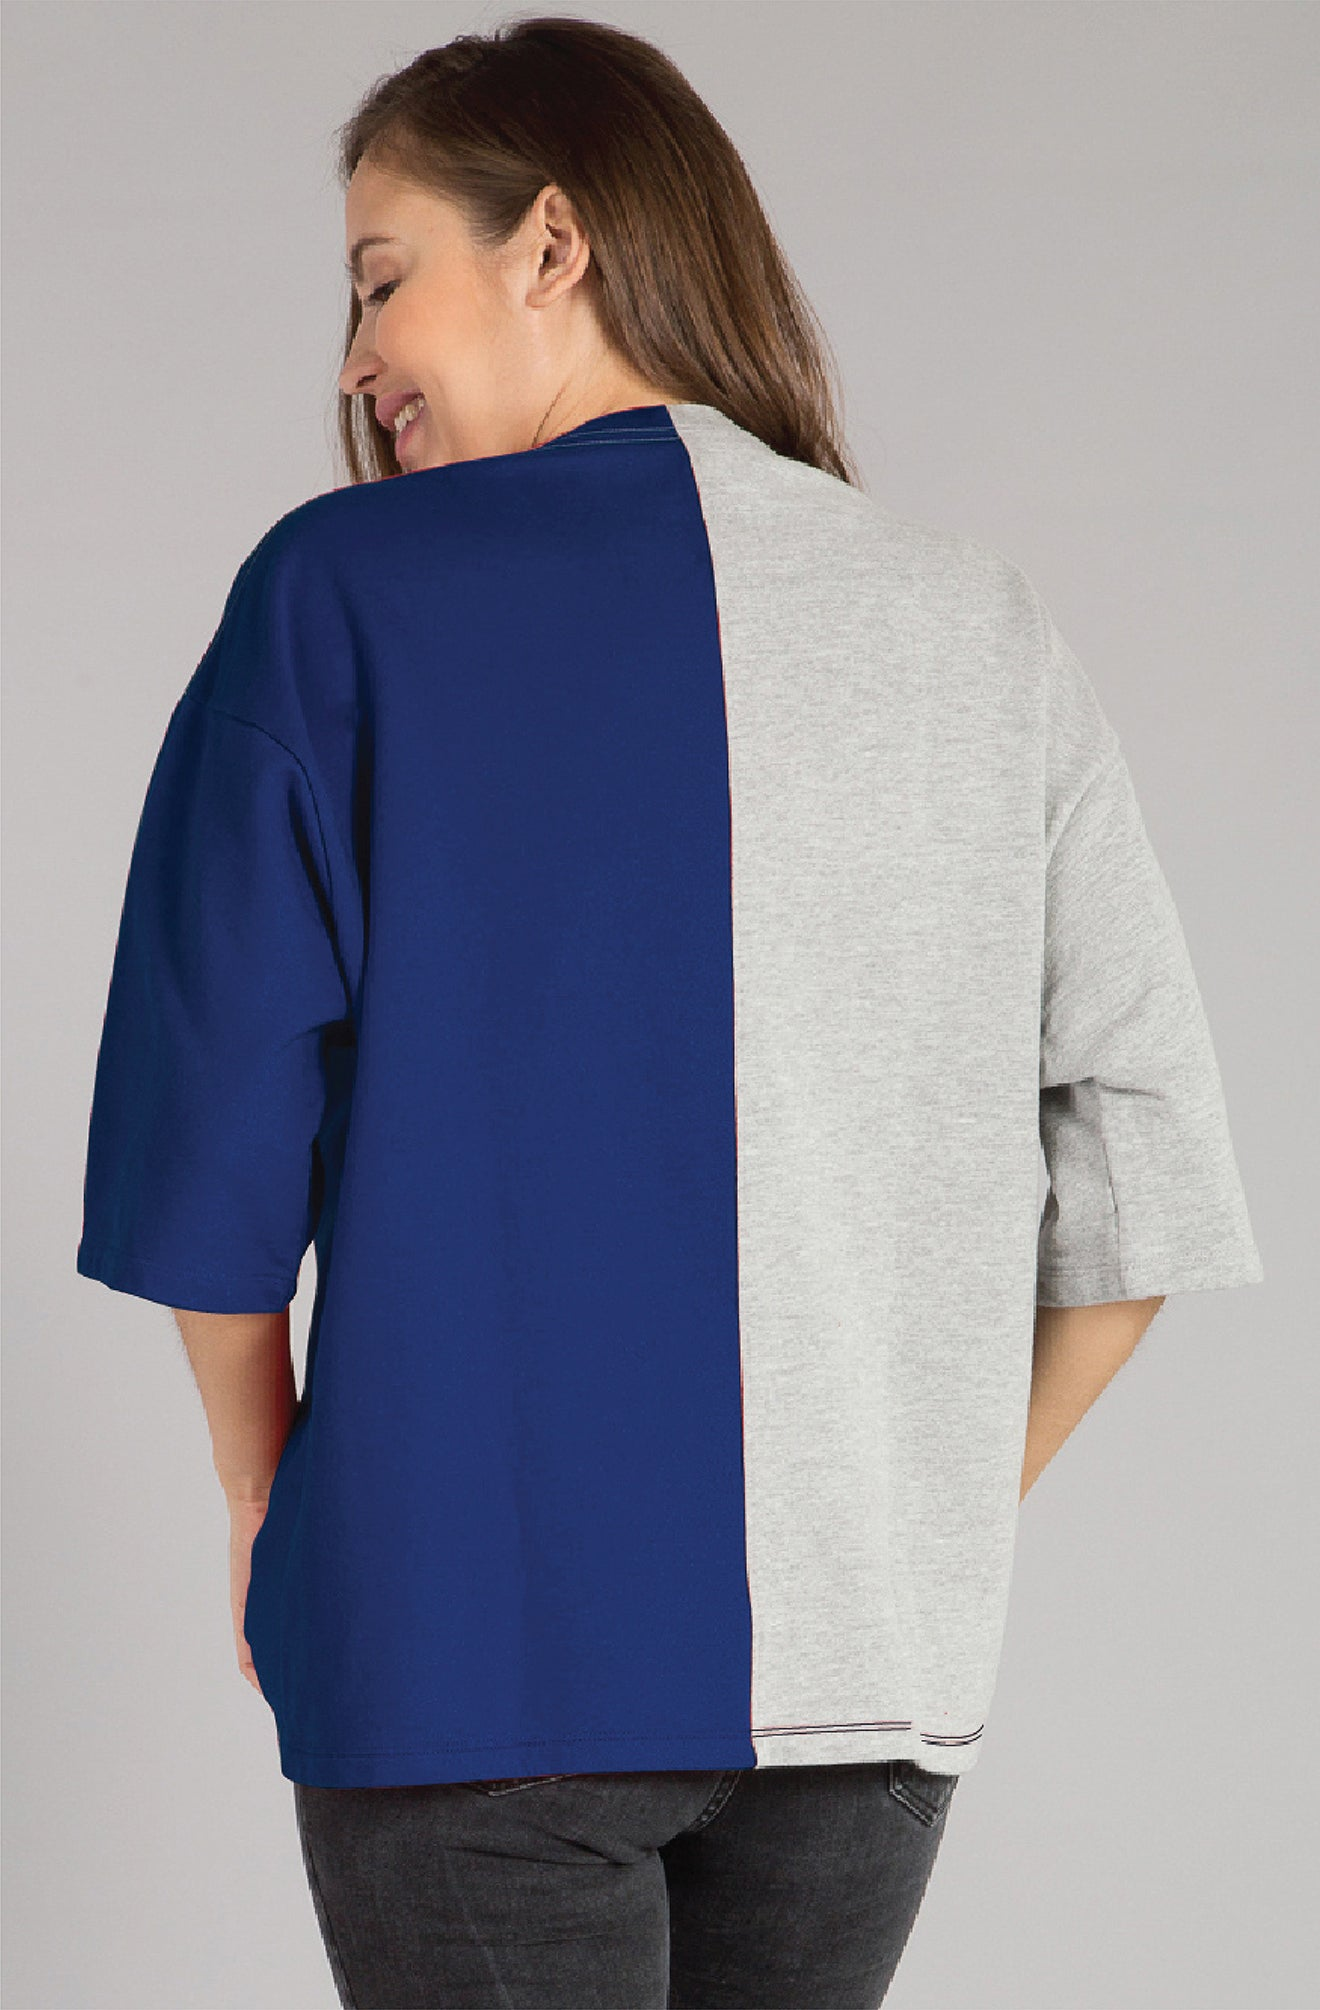 Contrast Panel Fashion Top